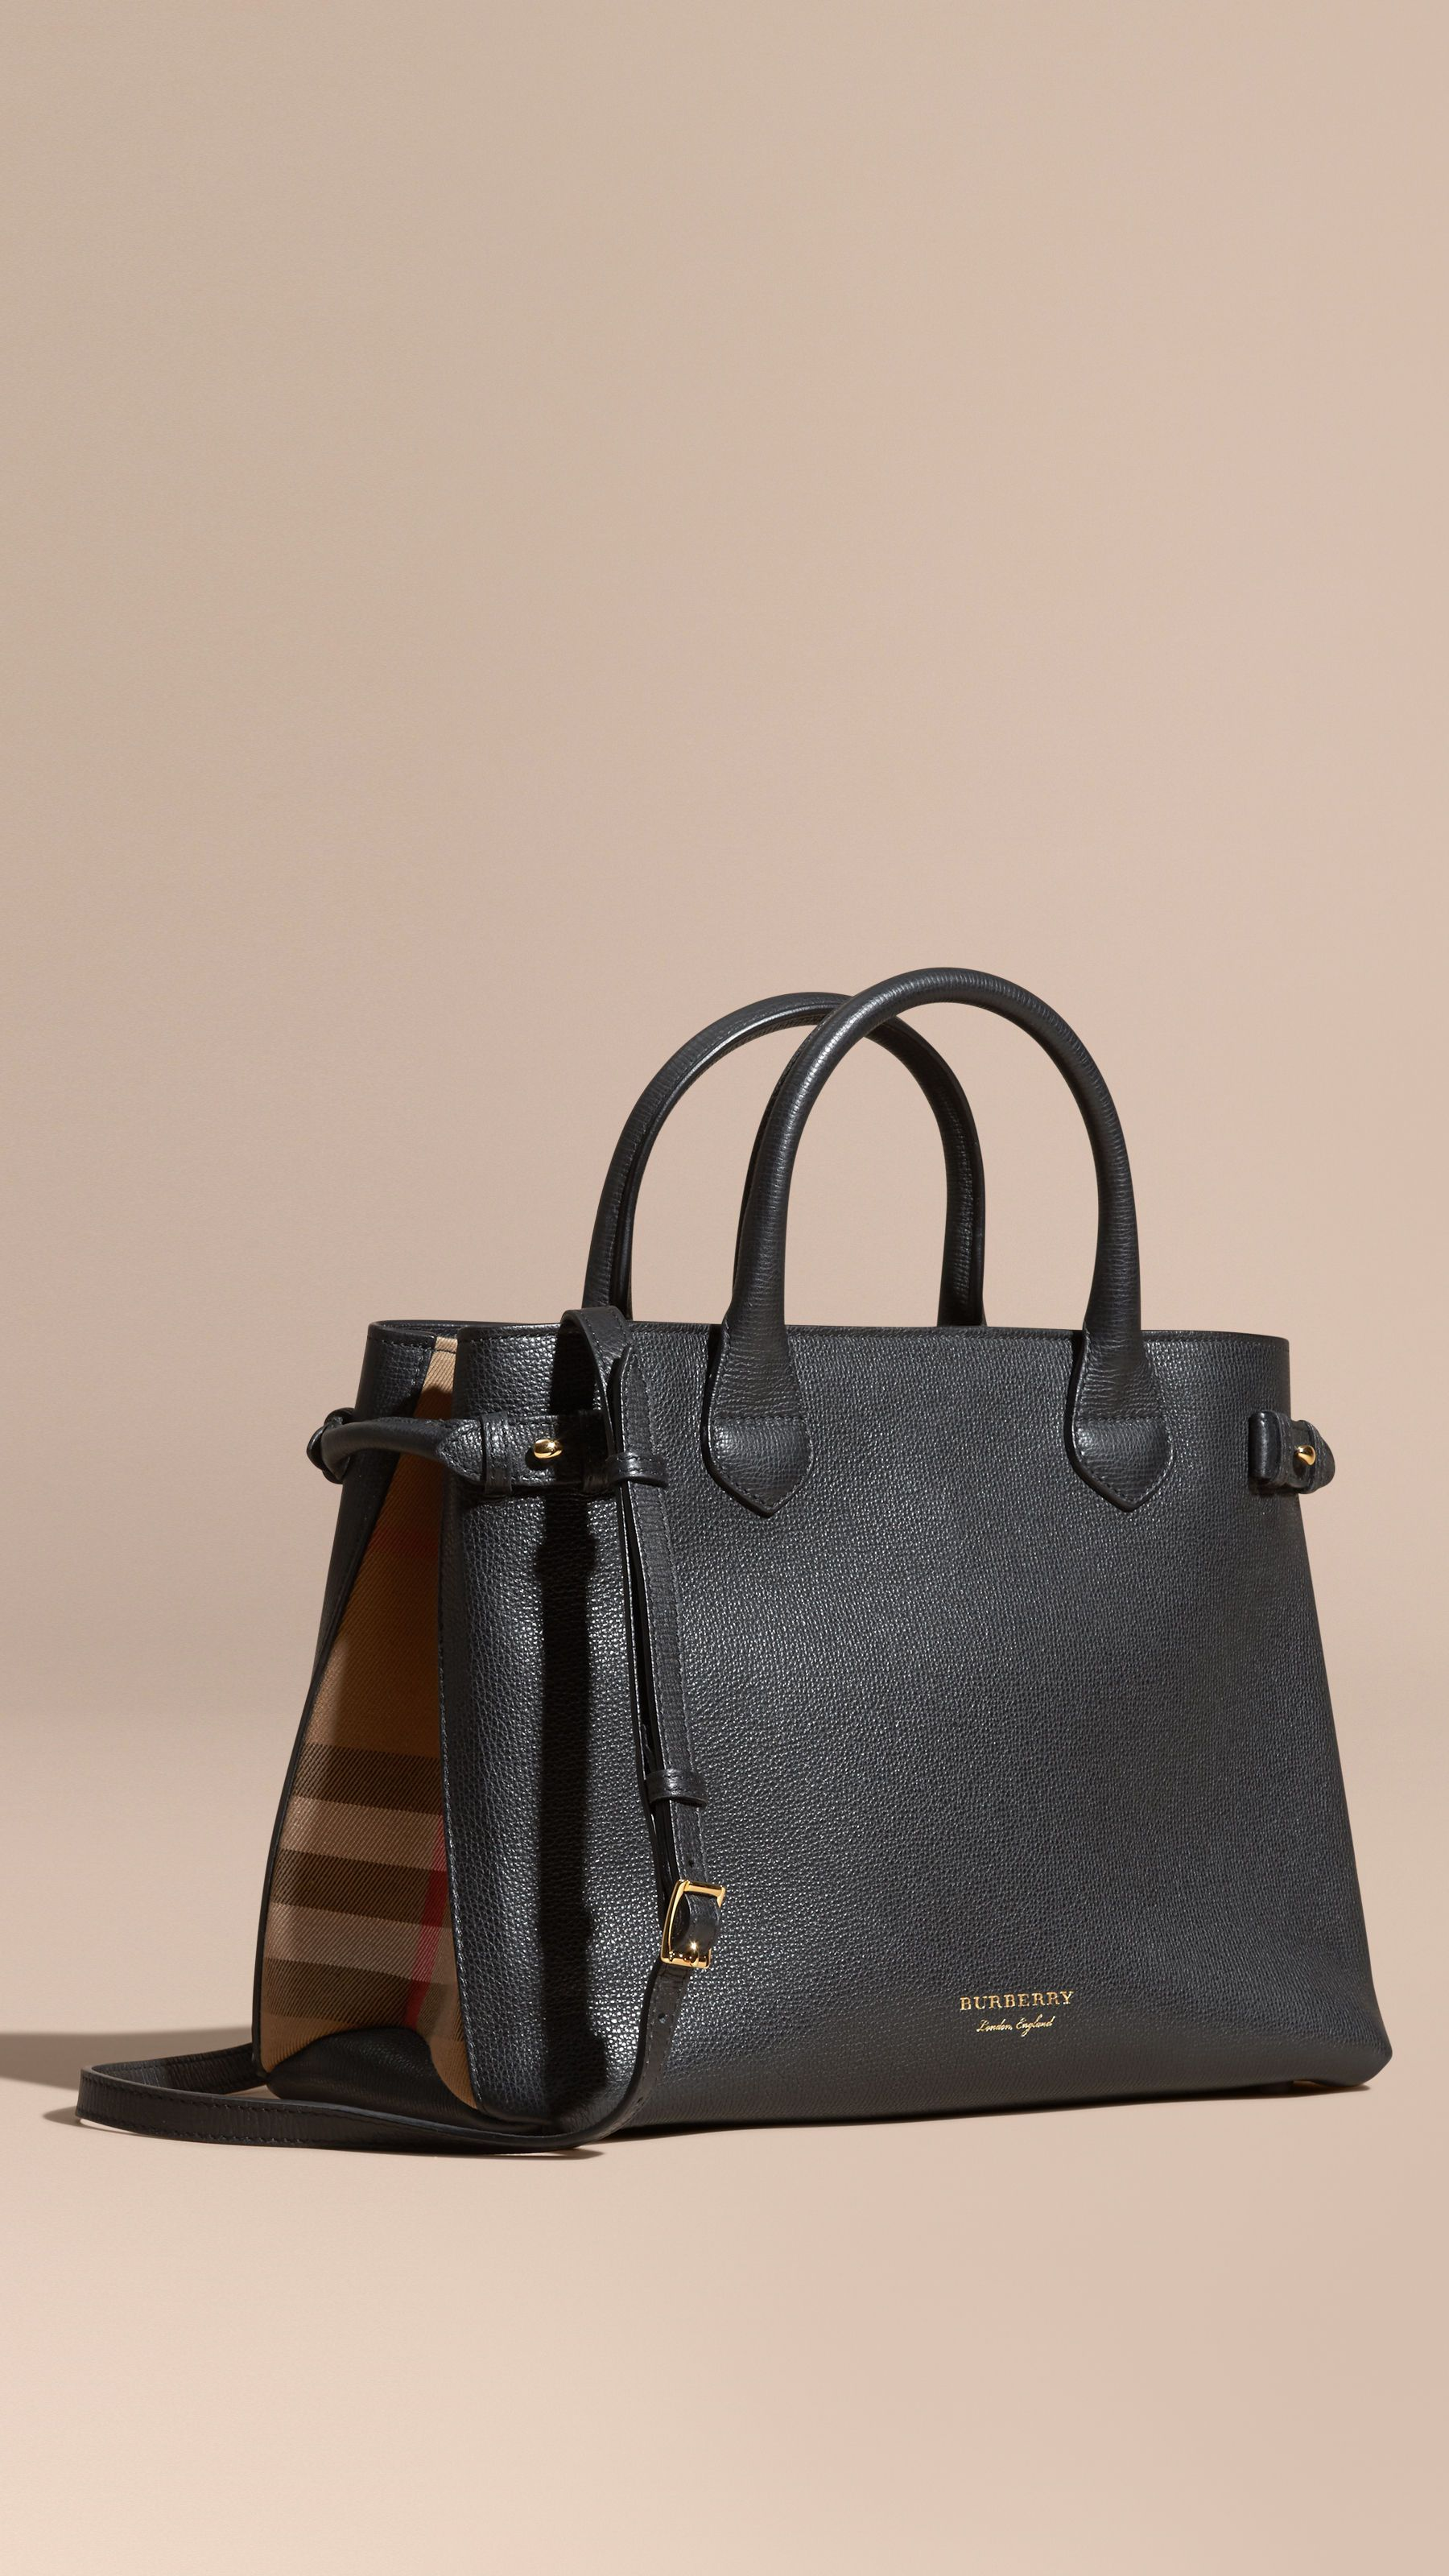 c758a275abe6 Burberry The Medium Banner in Leather and House Check